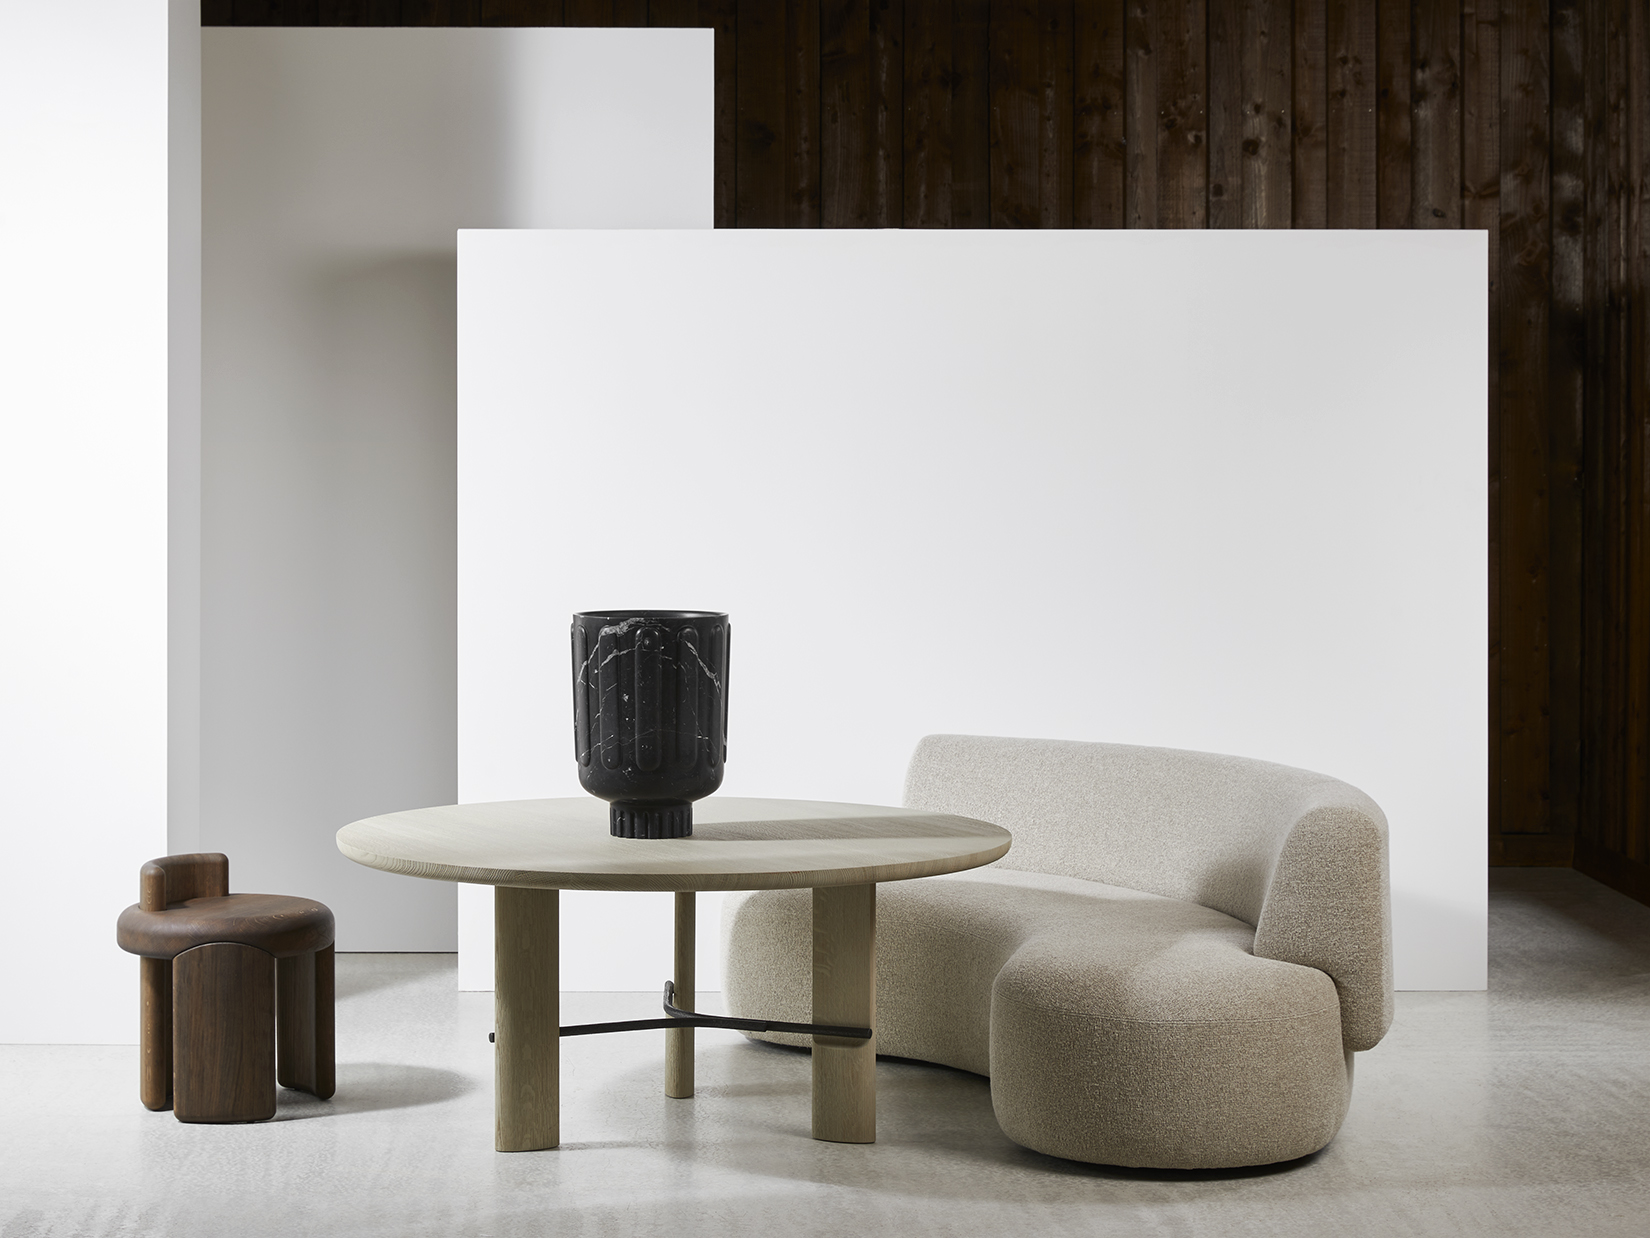 KAFA-stool-Luca-Erba-HUB_dining-table-LEK-sofa-Christophe-Delcourt-Collection-Particulière